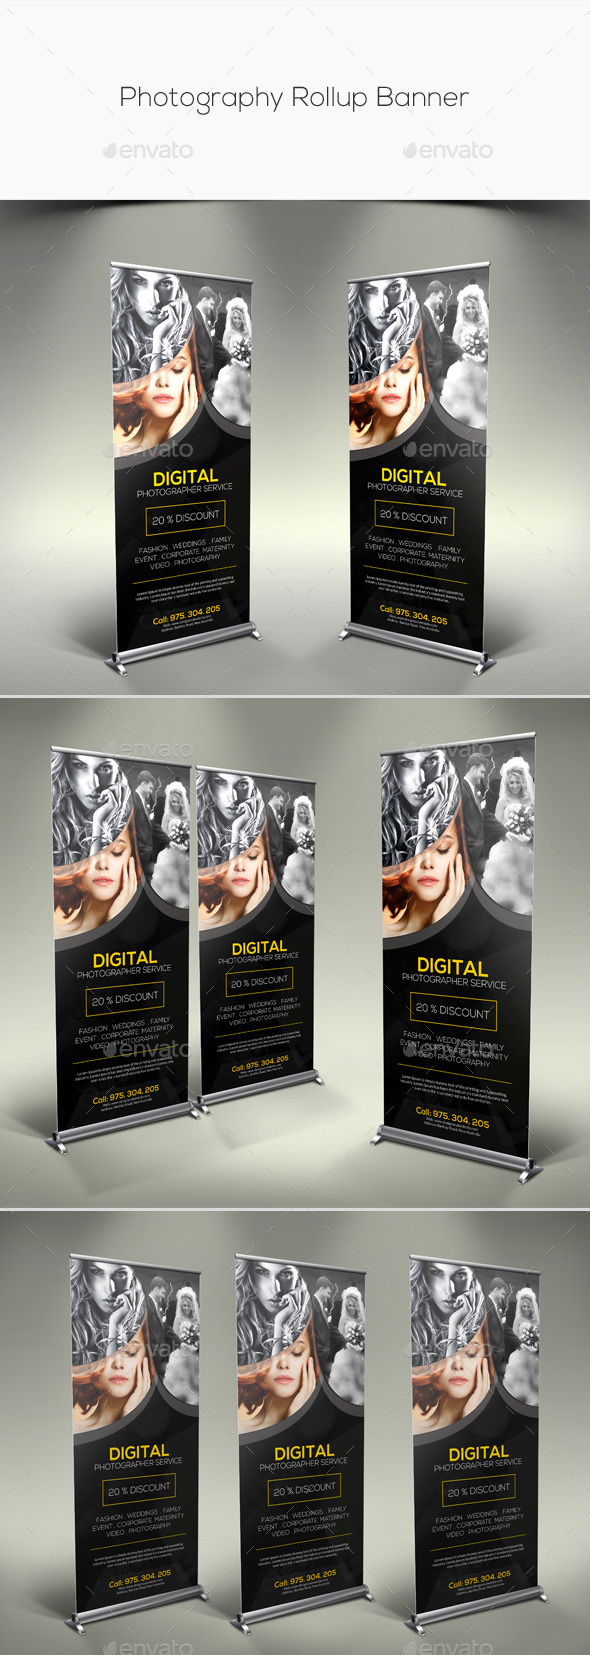 GraphicRiver Photography Rollup Banner 11279958